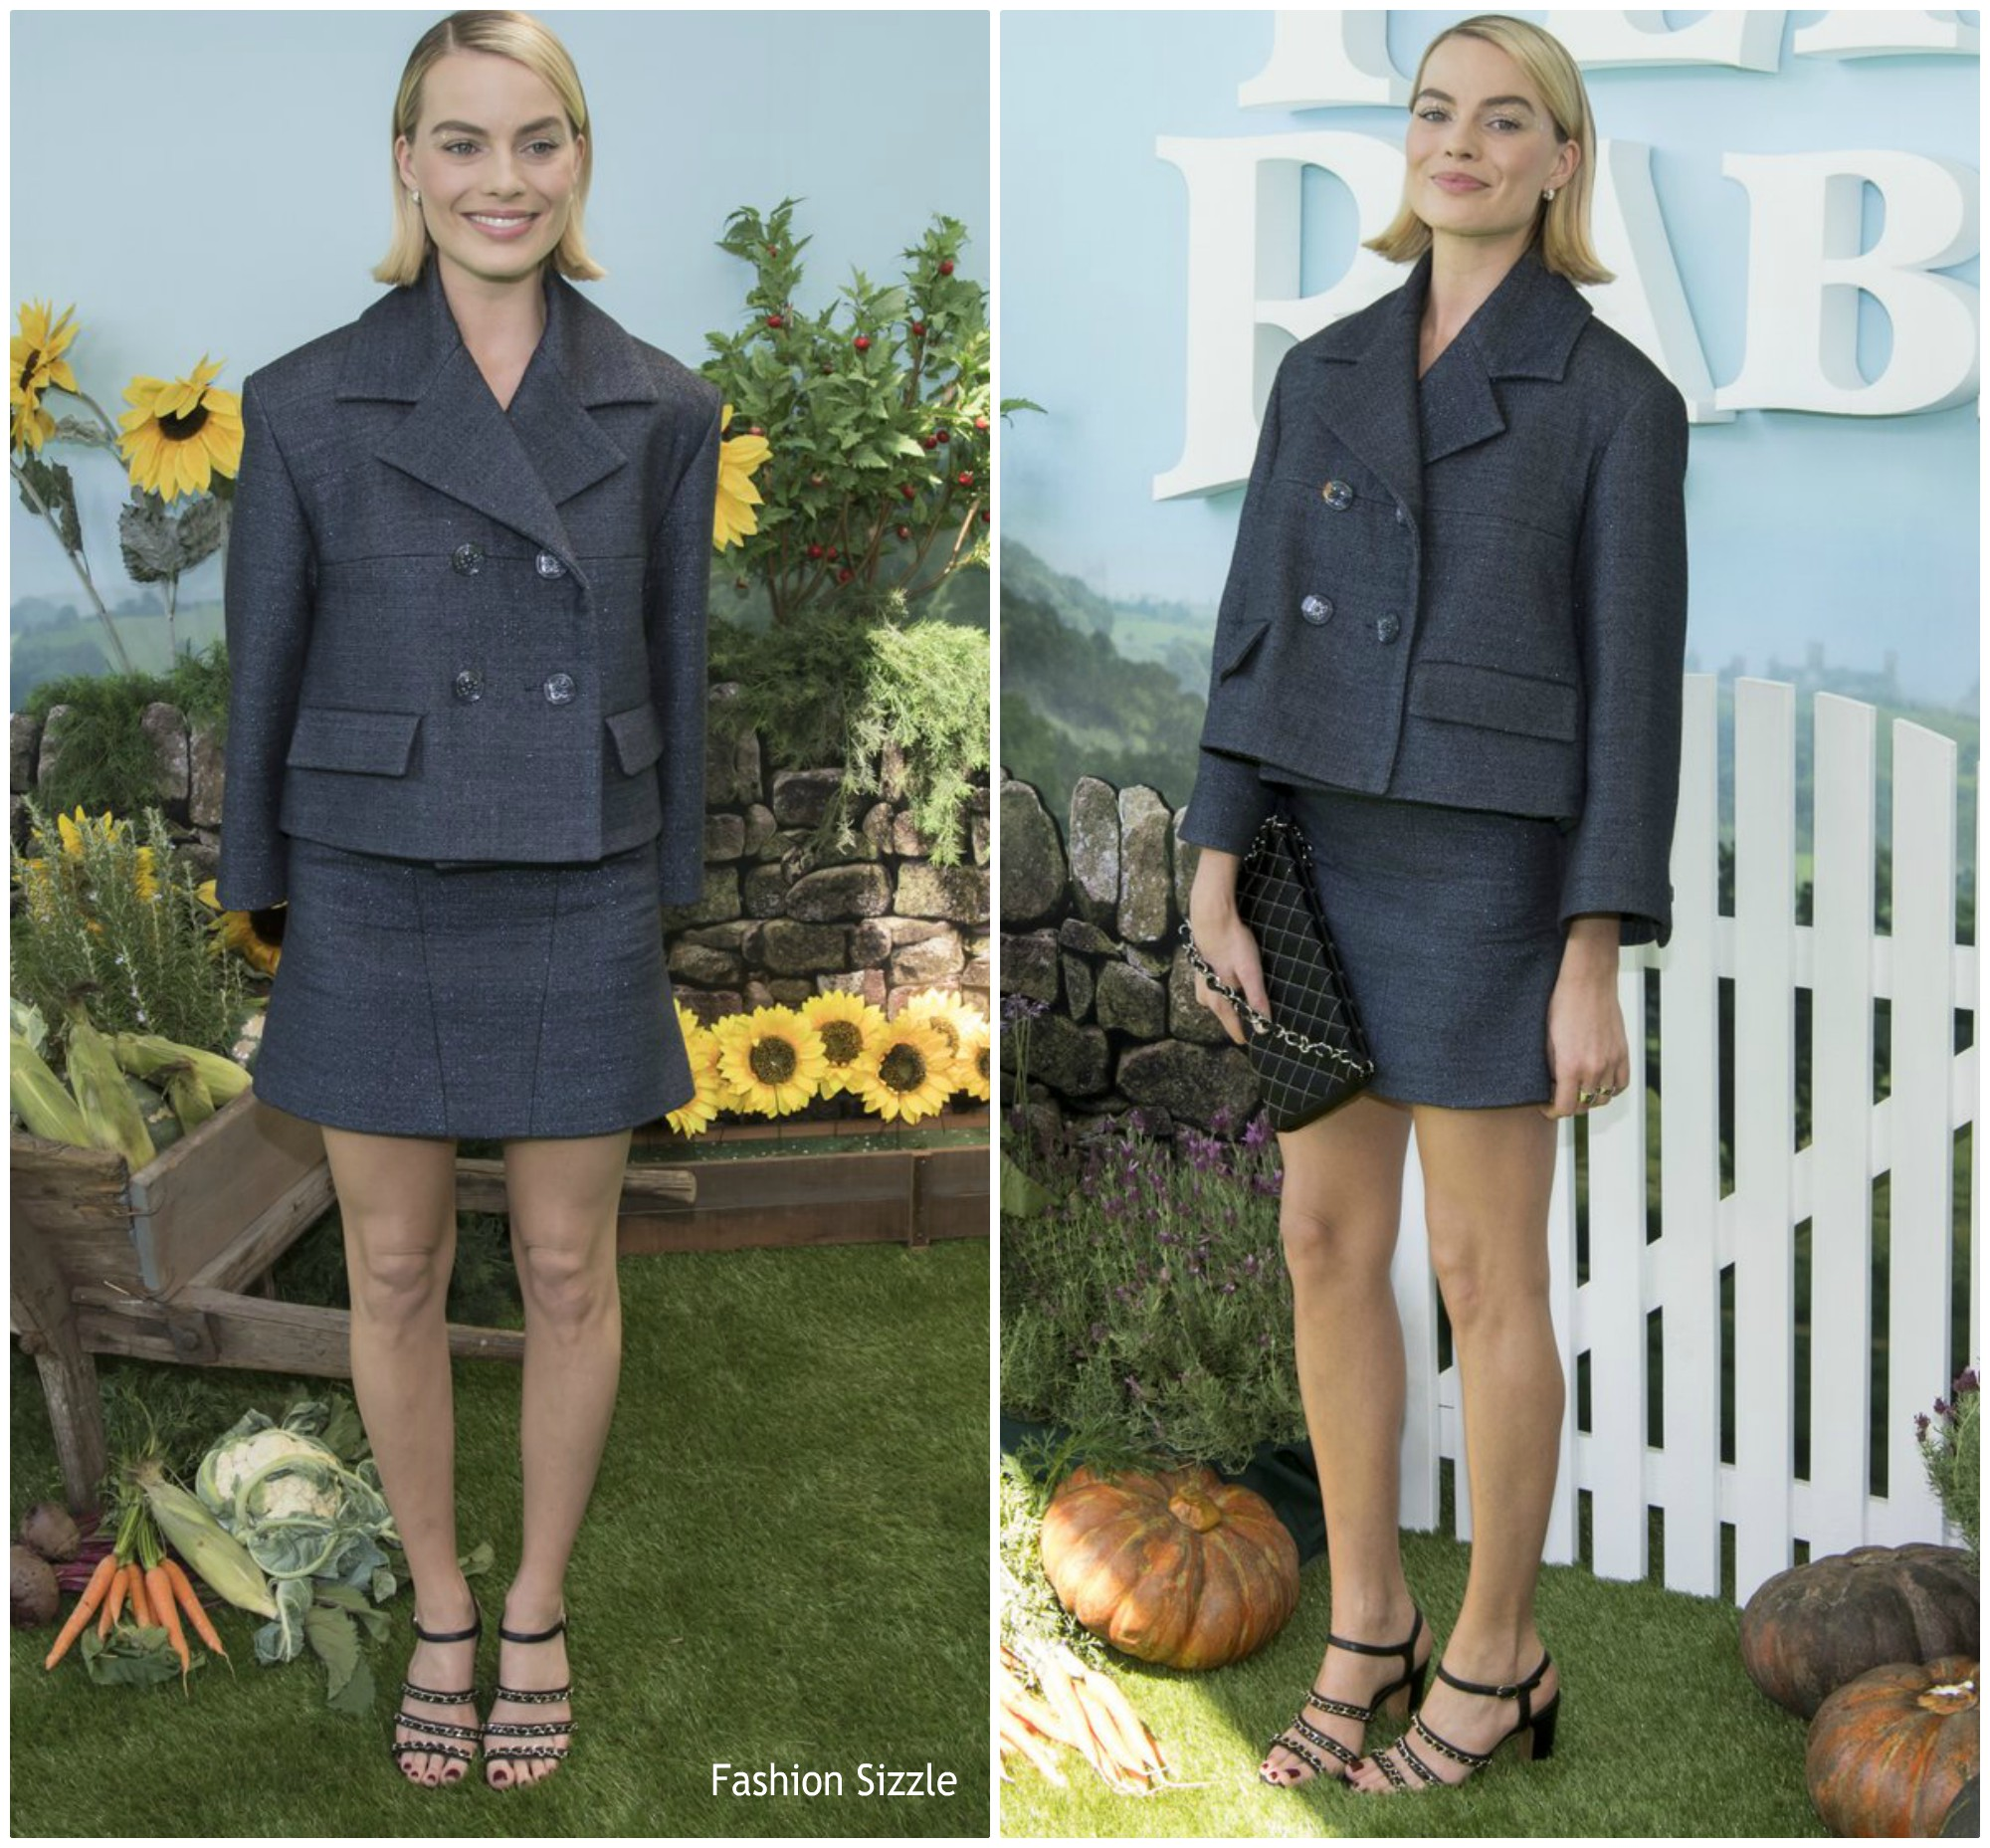 margot-robbie-in-chanel-peter-rabbit-sydney=premiere